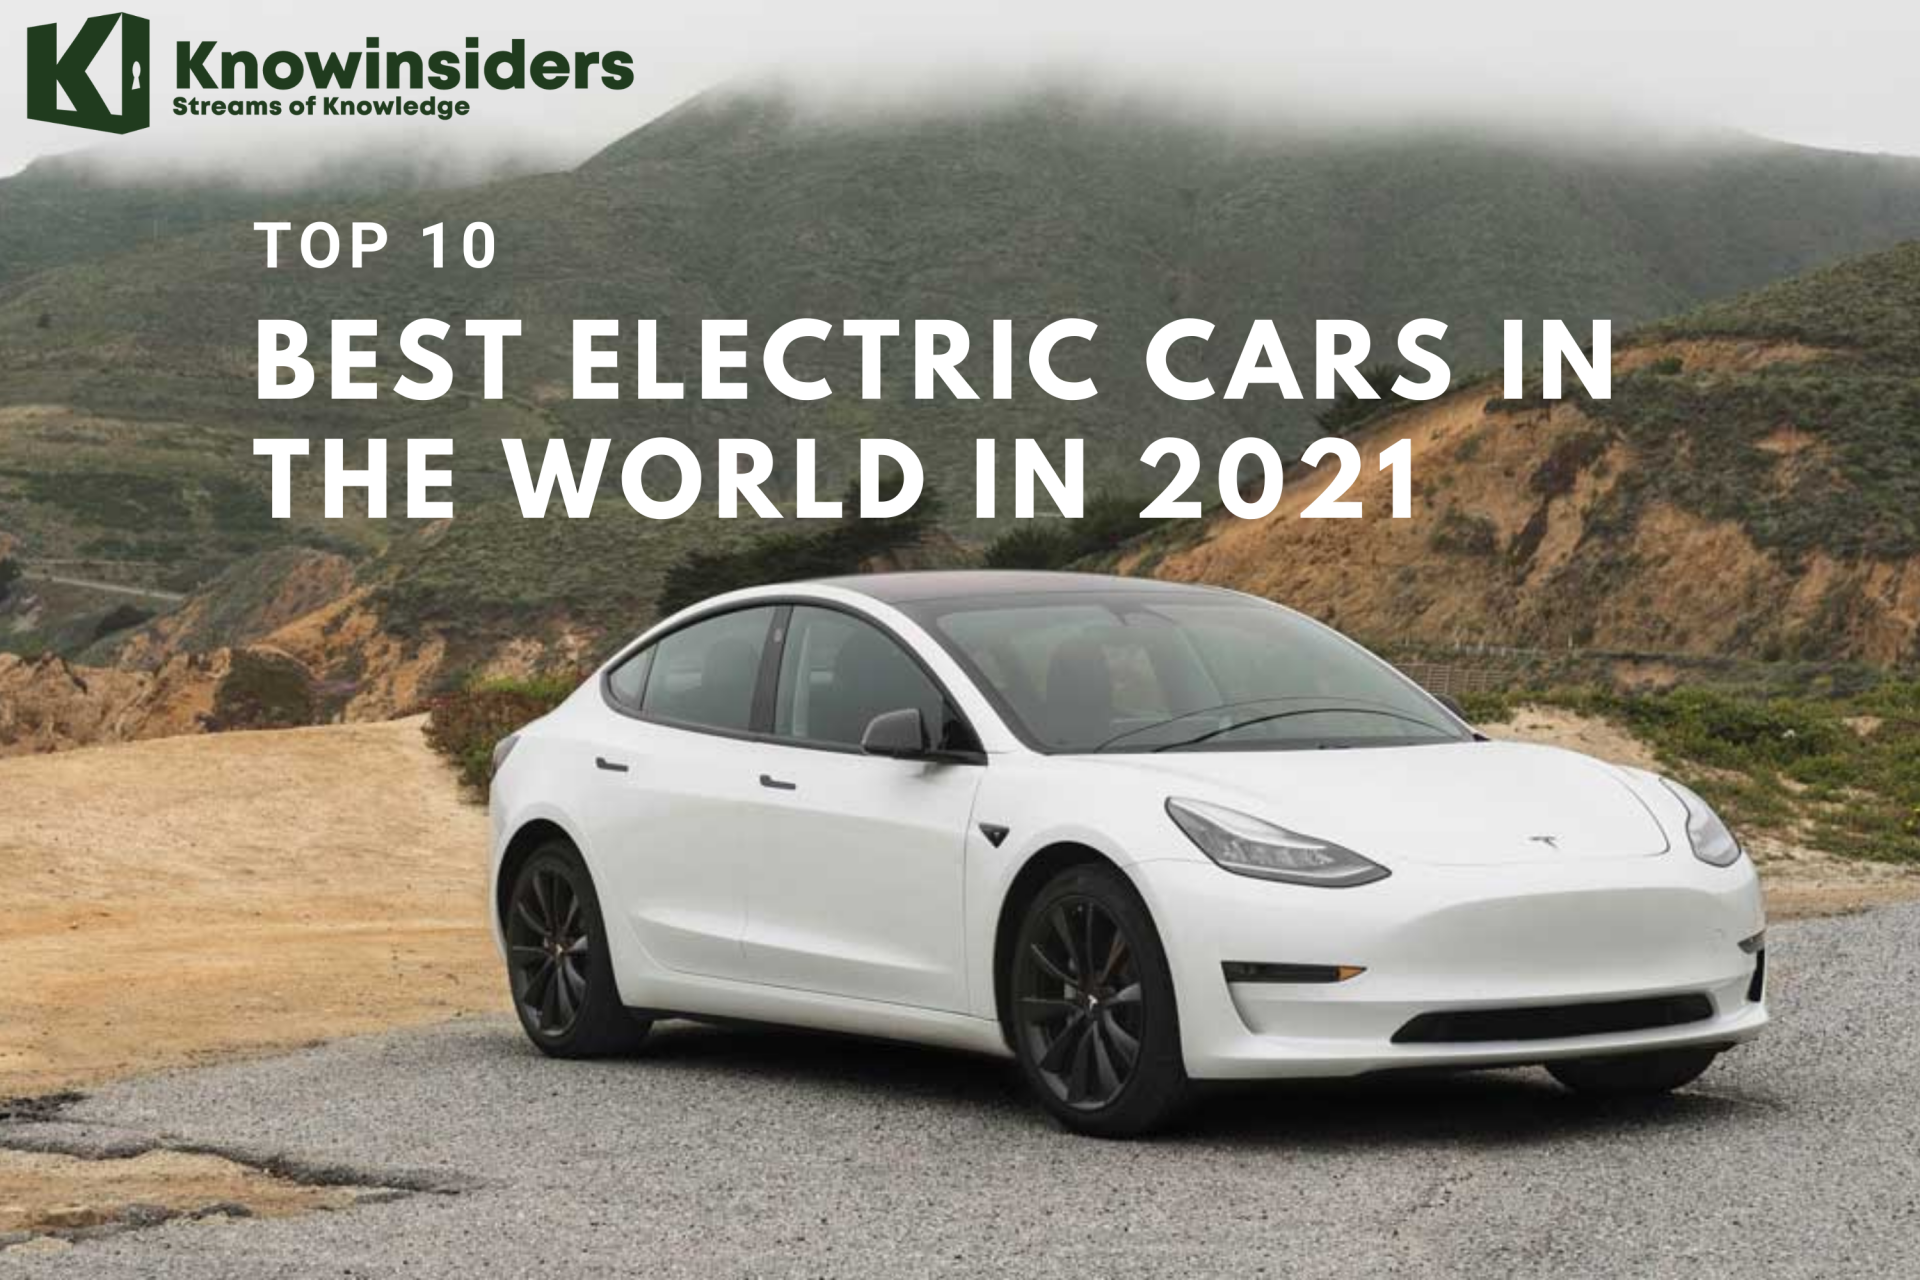 Top 10 Best Electric Cars in the World in 2021/2022